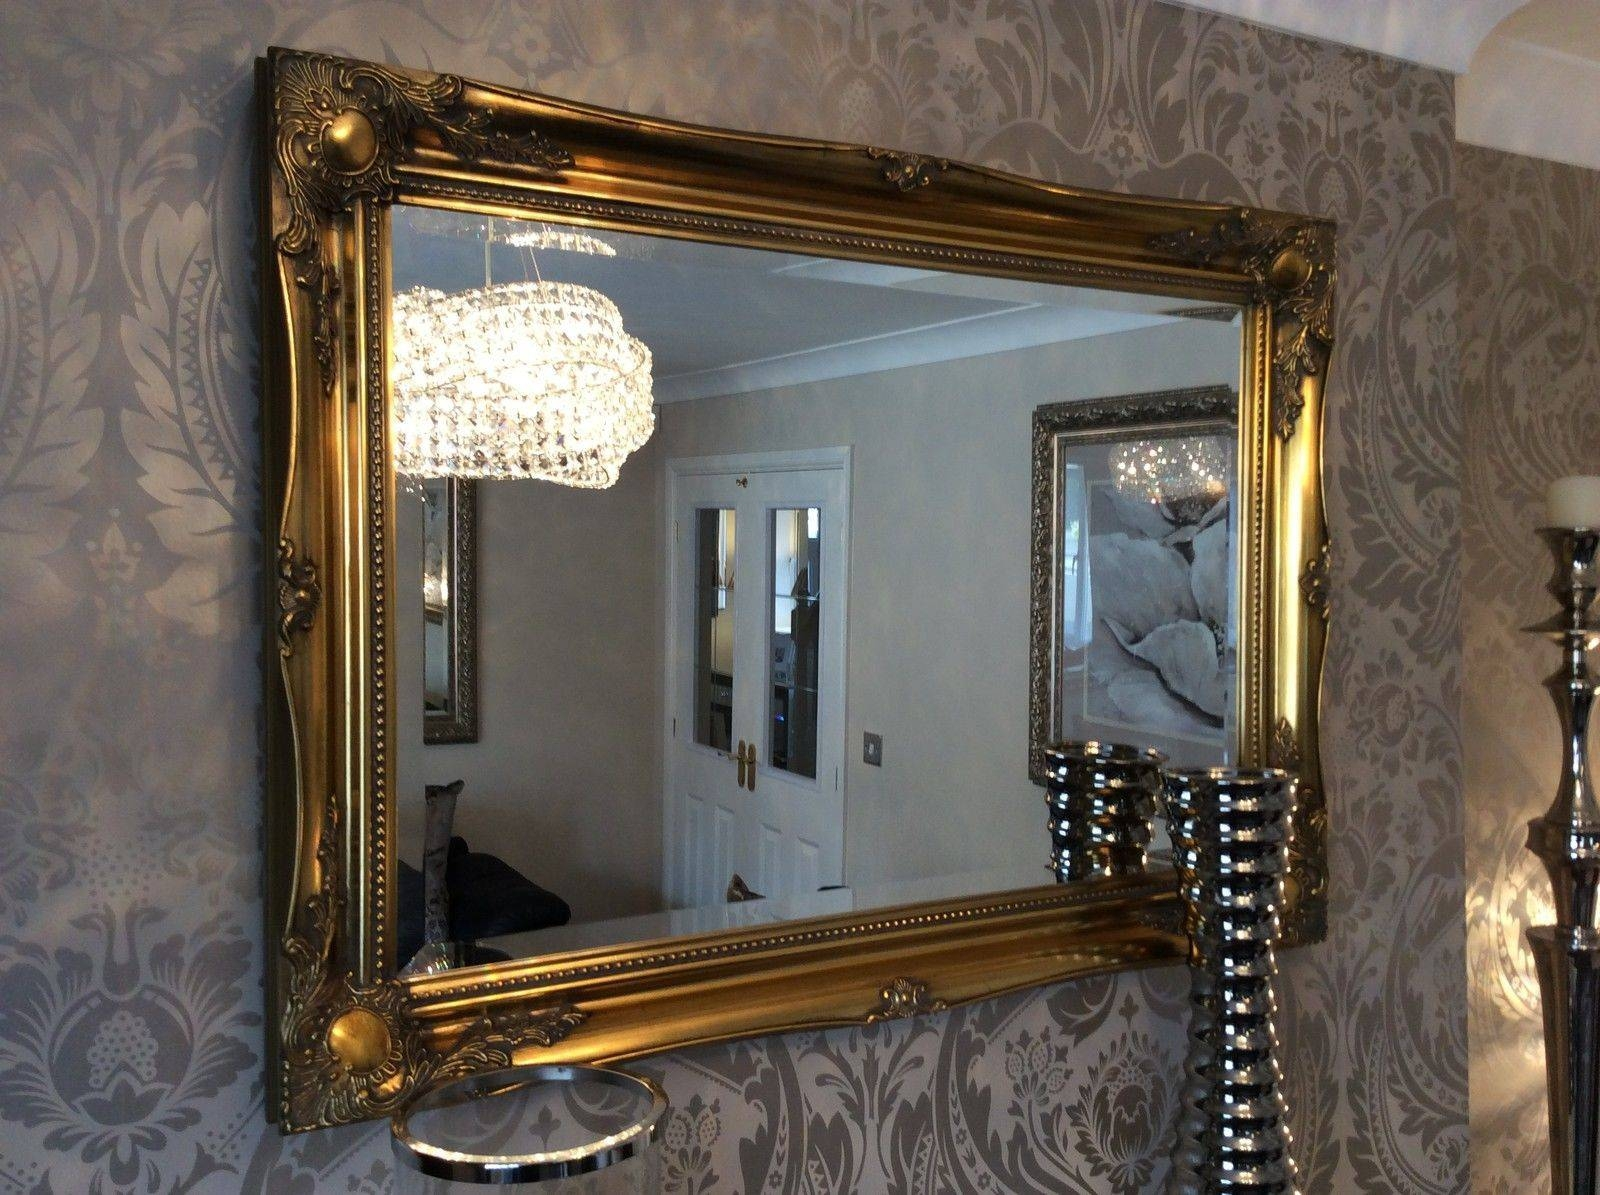 Antique Oval Wall Mirrors Antique Oak Wall Mirrors - Classic within Gold Ornate Mirrors (Image 3 of 25)